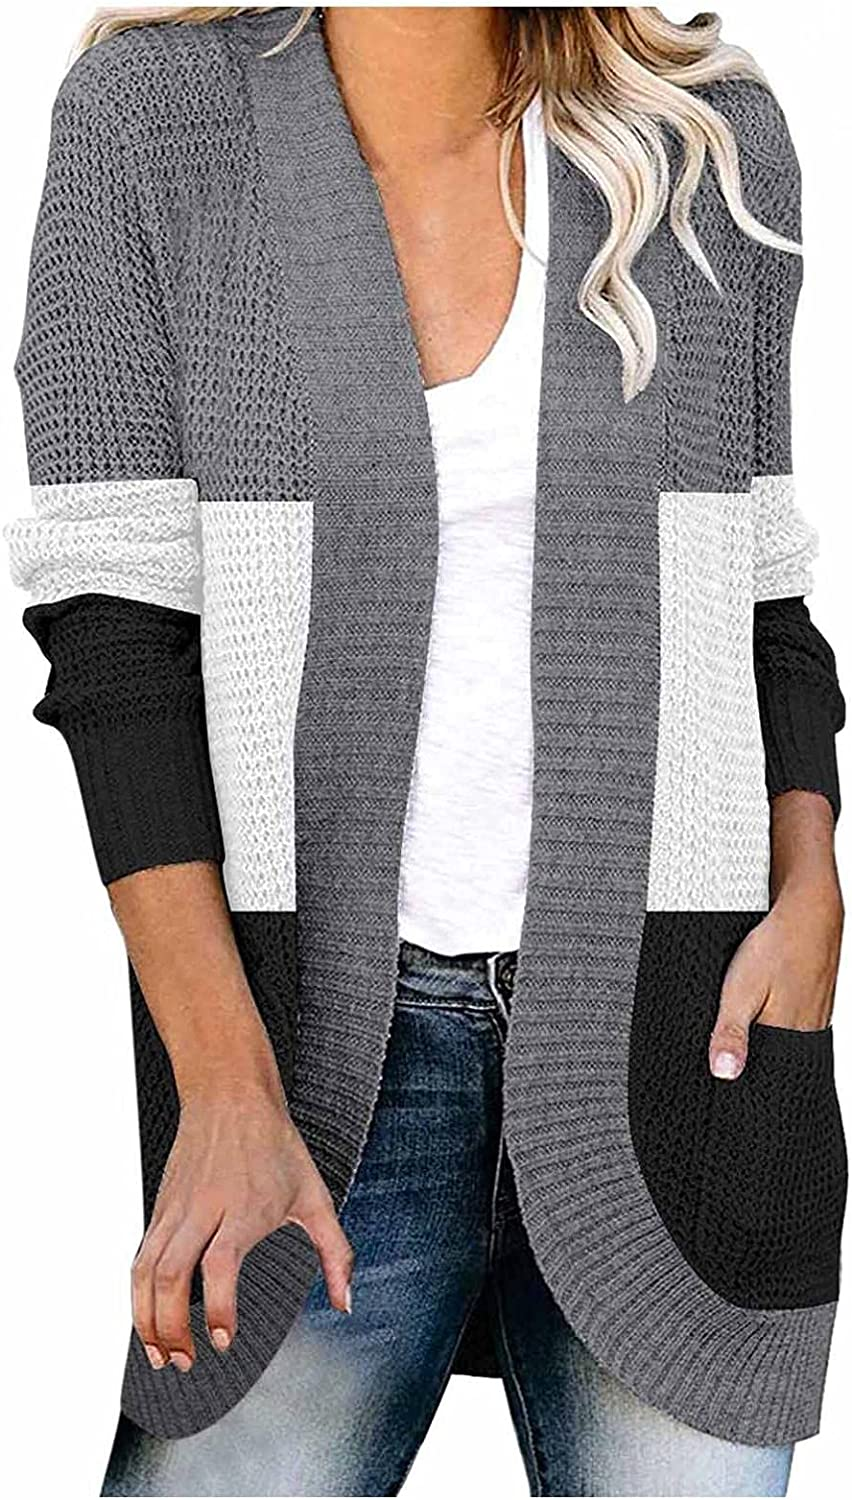 Aniwood Sweaters for Women Cardigan Open Front, Women's Long Sleeve Color Knit Cardigan Sweater Outerwear with Pockets